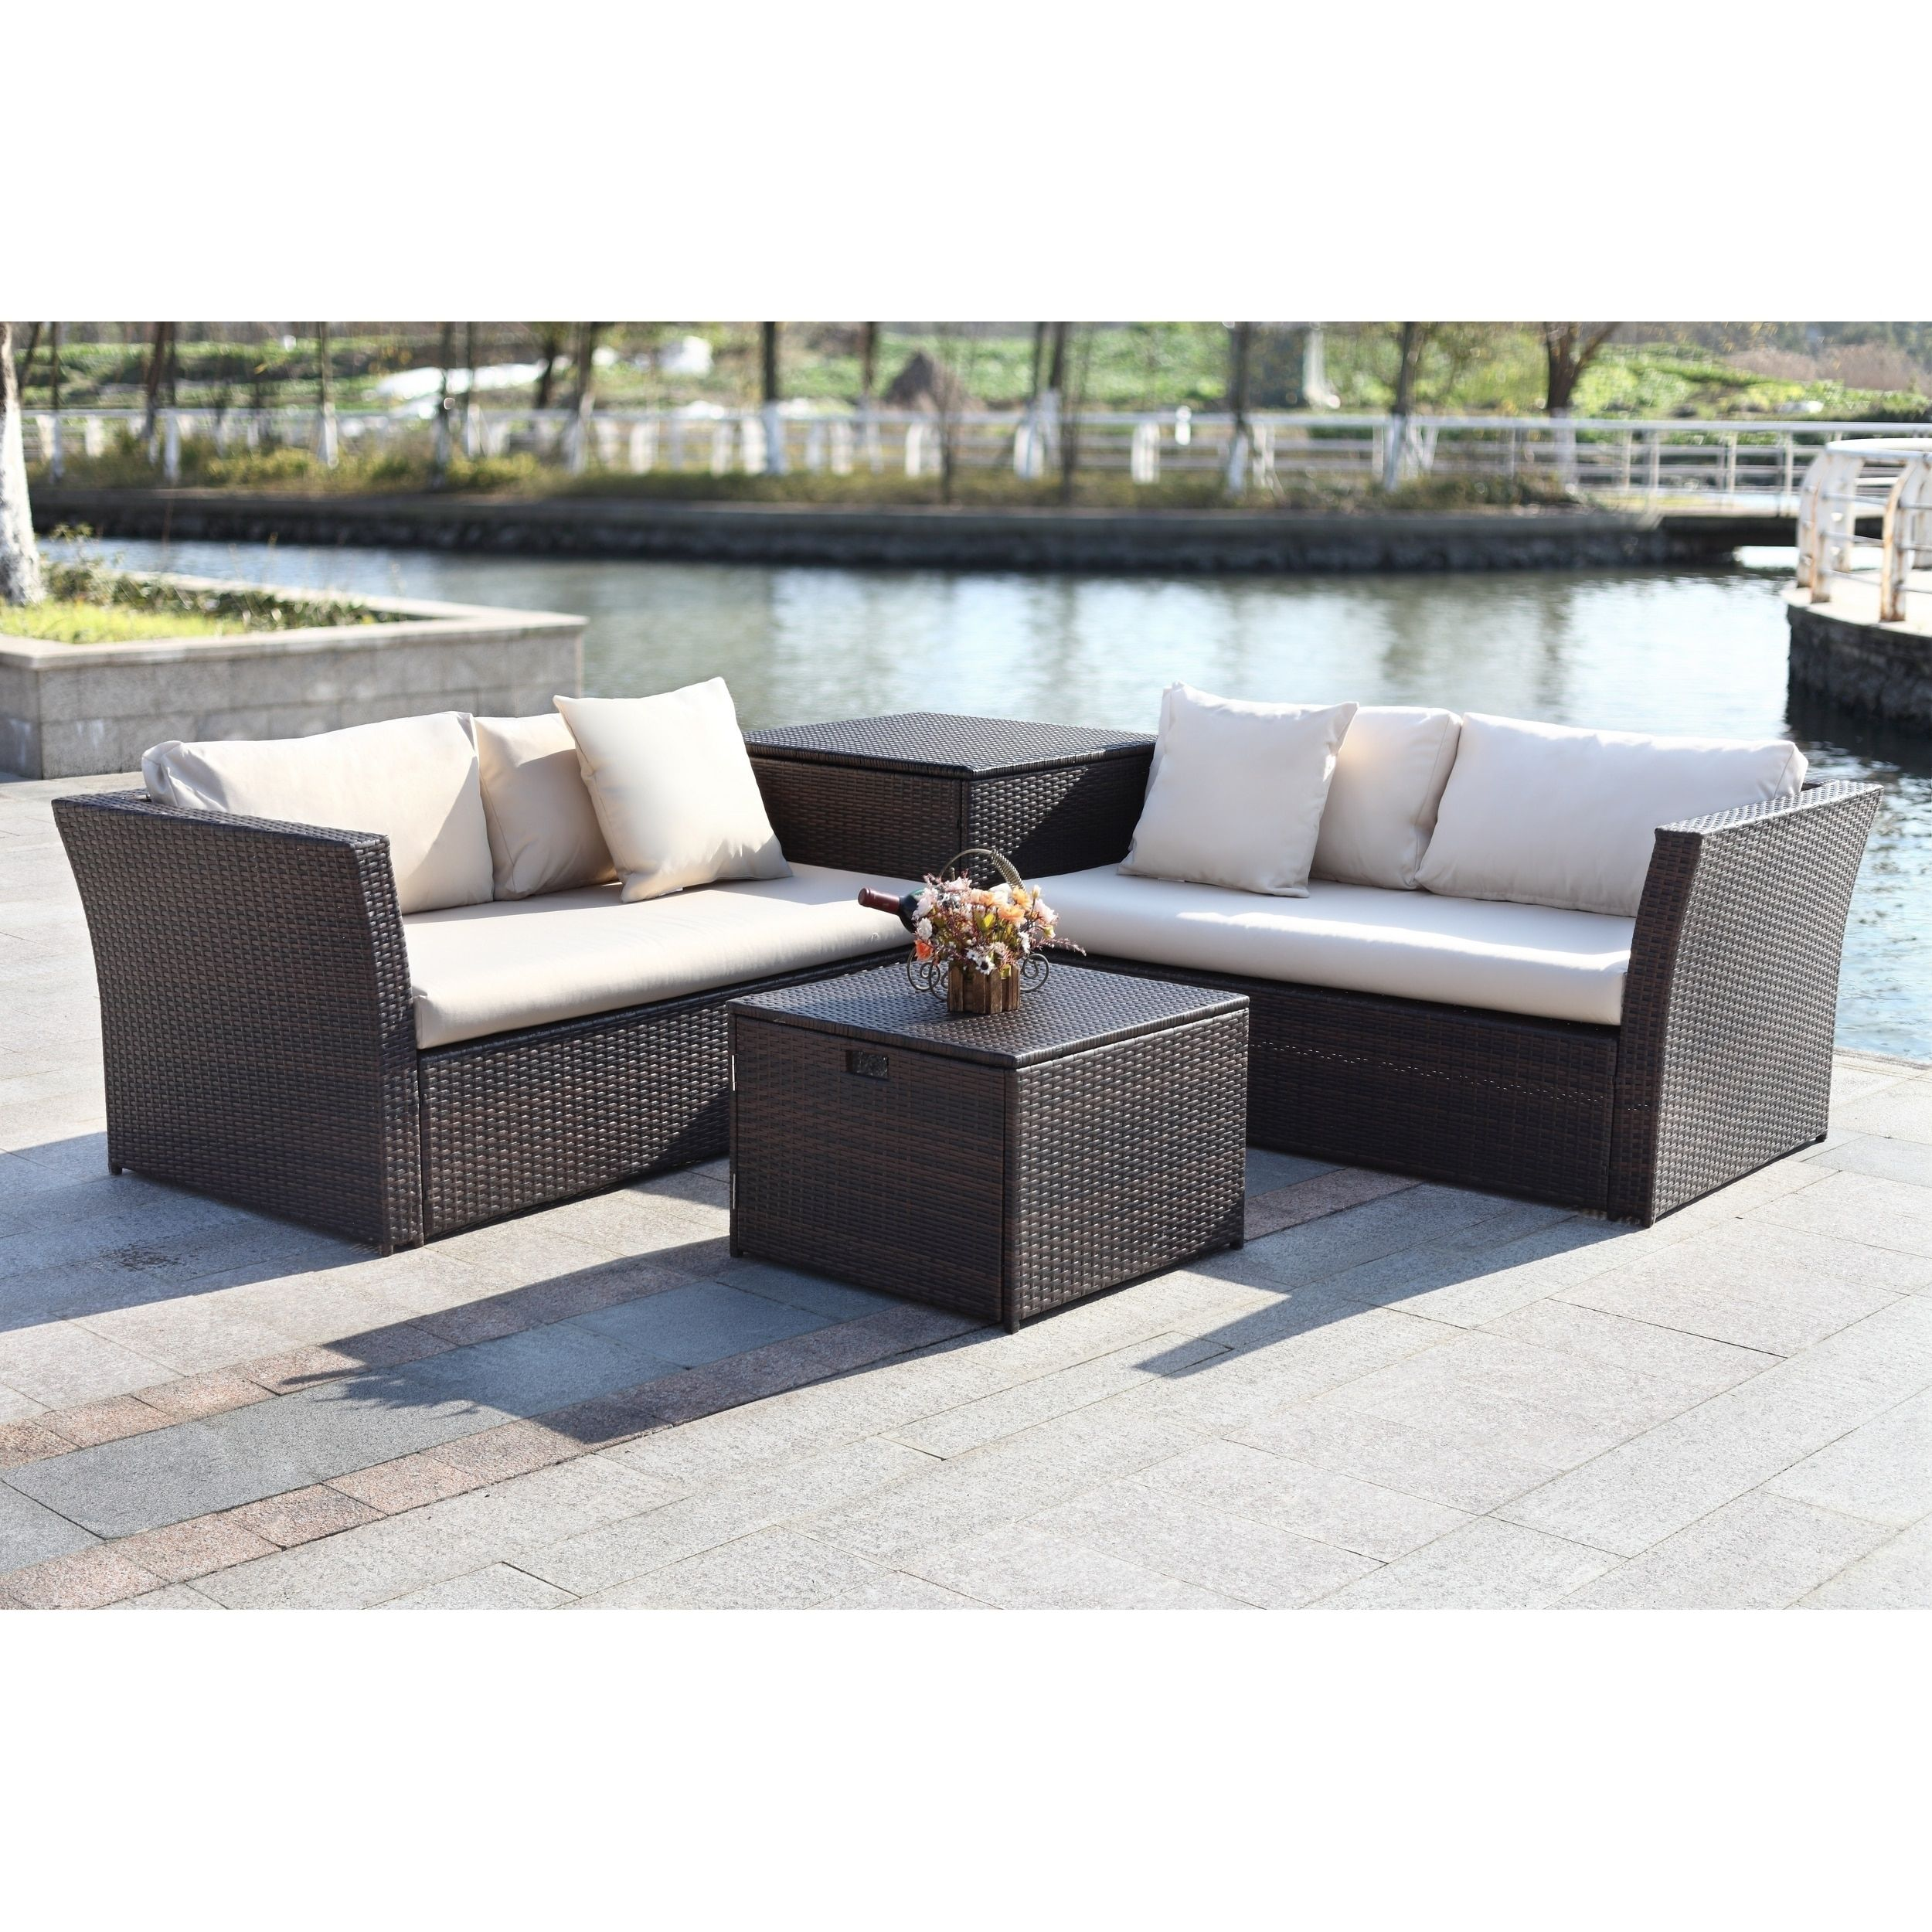 Safavieh Welch Brown/Beige Outdoor Living Sectional Set ... on Outdoor Living Wicker  id=97372